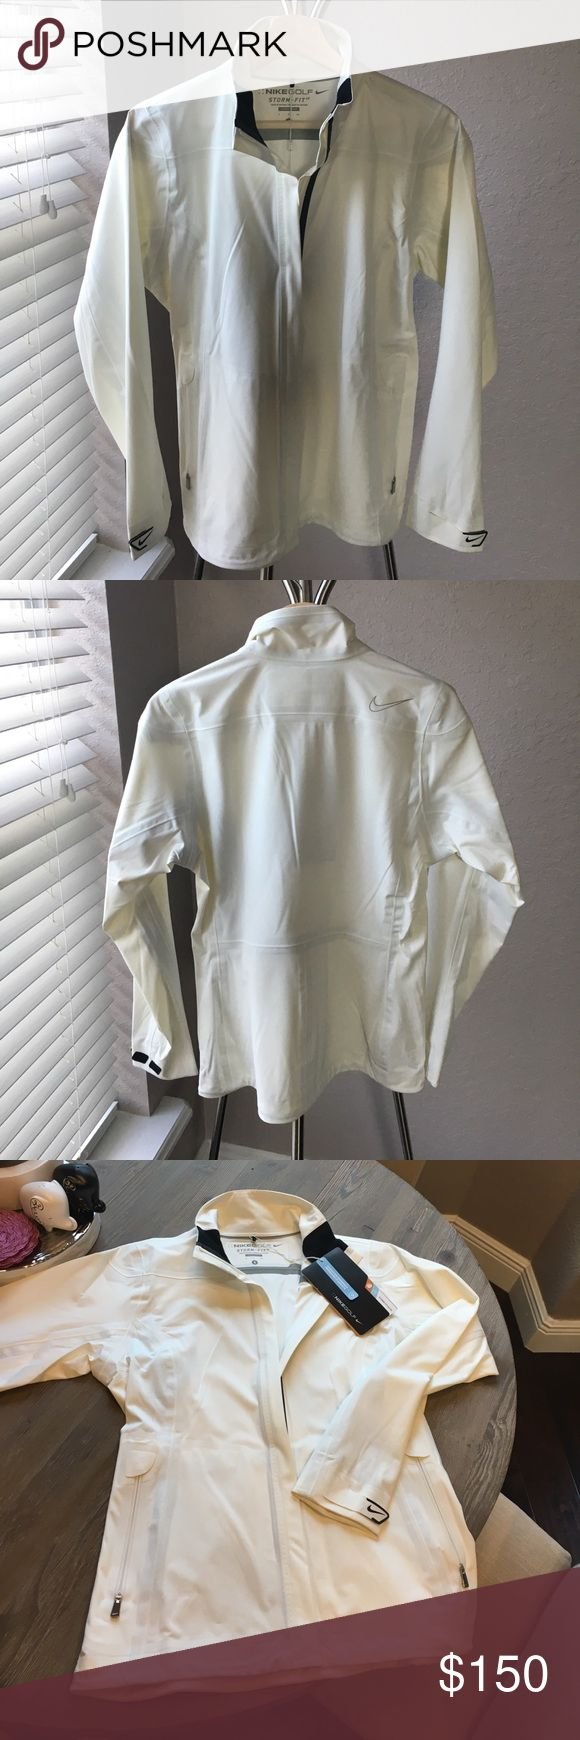 Nike Waterproof Golf Jacket White, small, waterproof, golf jacket. Storm-Fit Elite. 2 zipper pockets and Velcro sleeve fasteners. Will make an awesome Christmas present! Nike Jackets & Coats